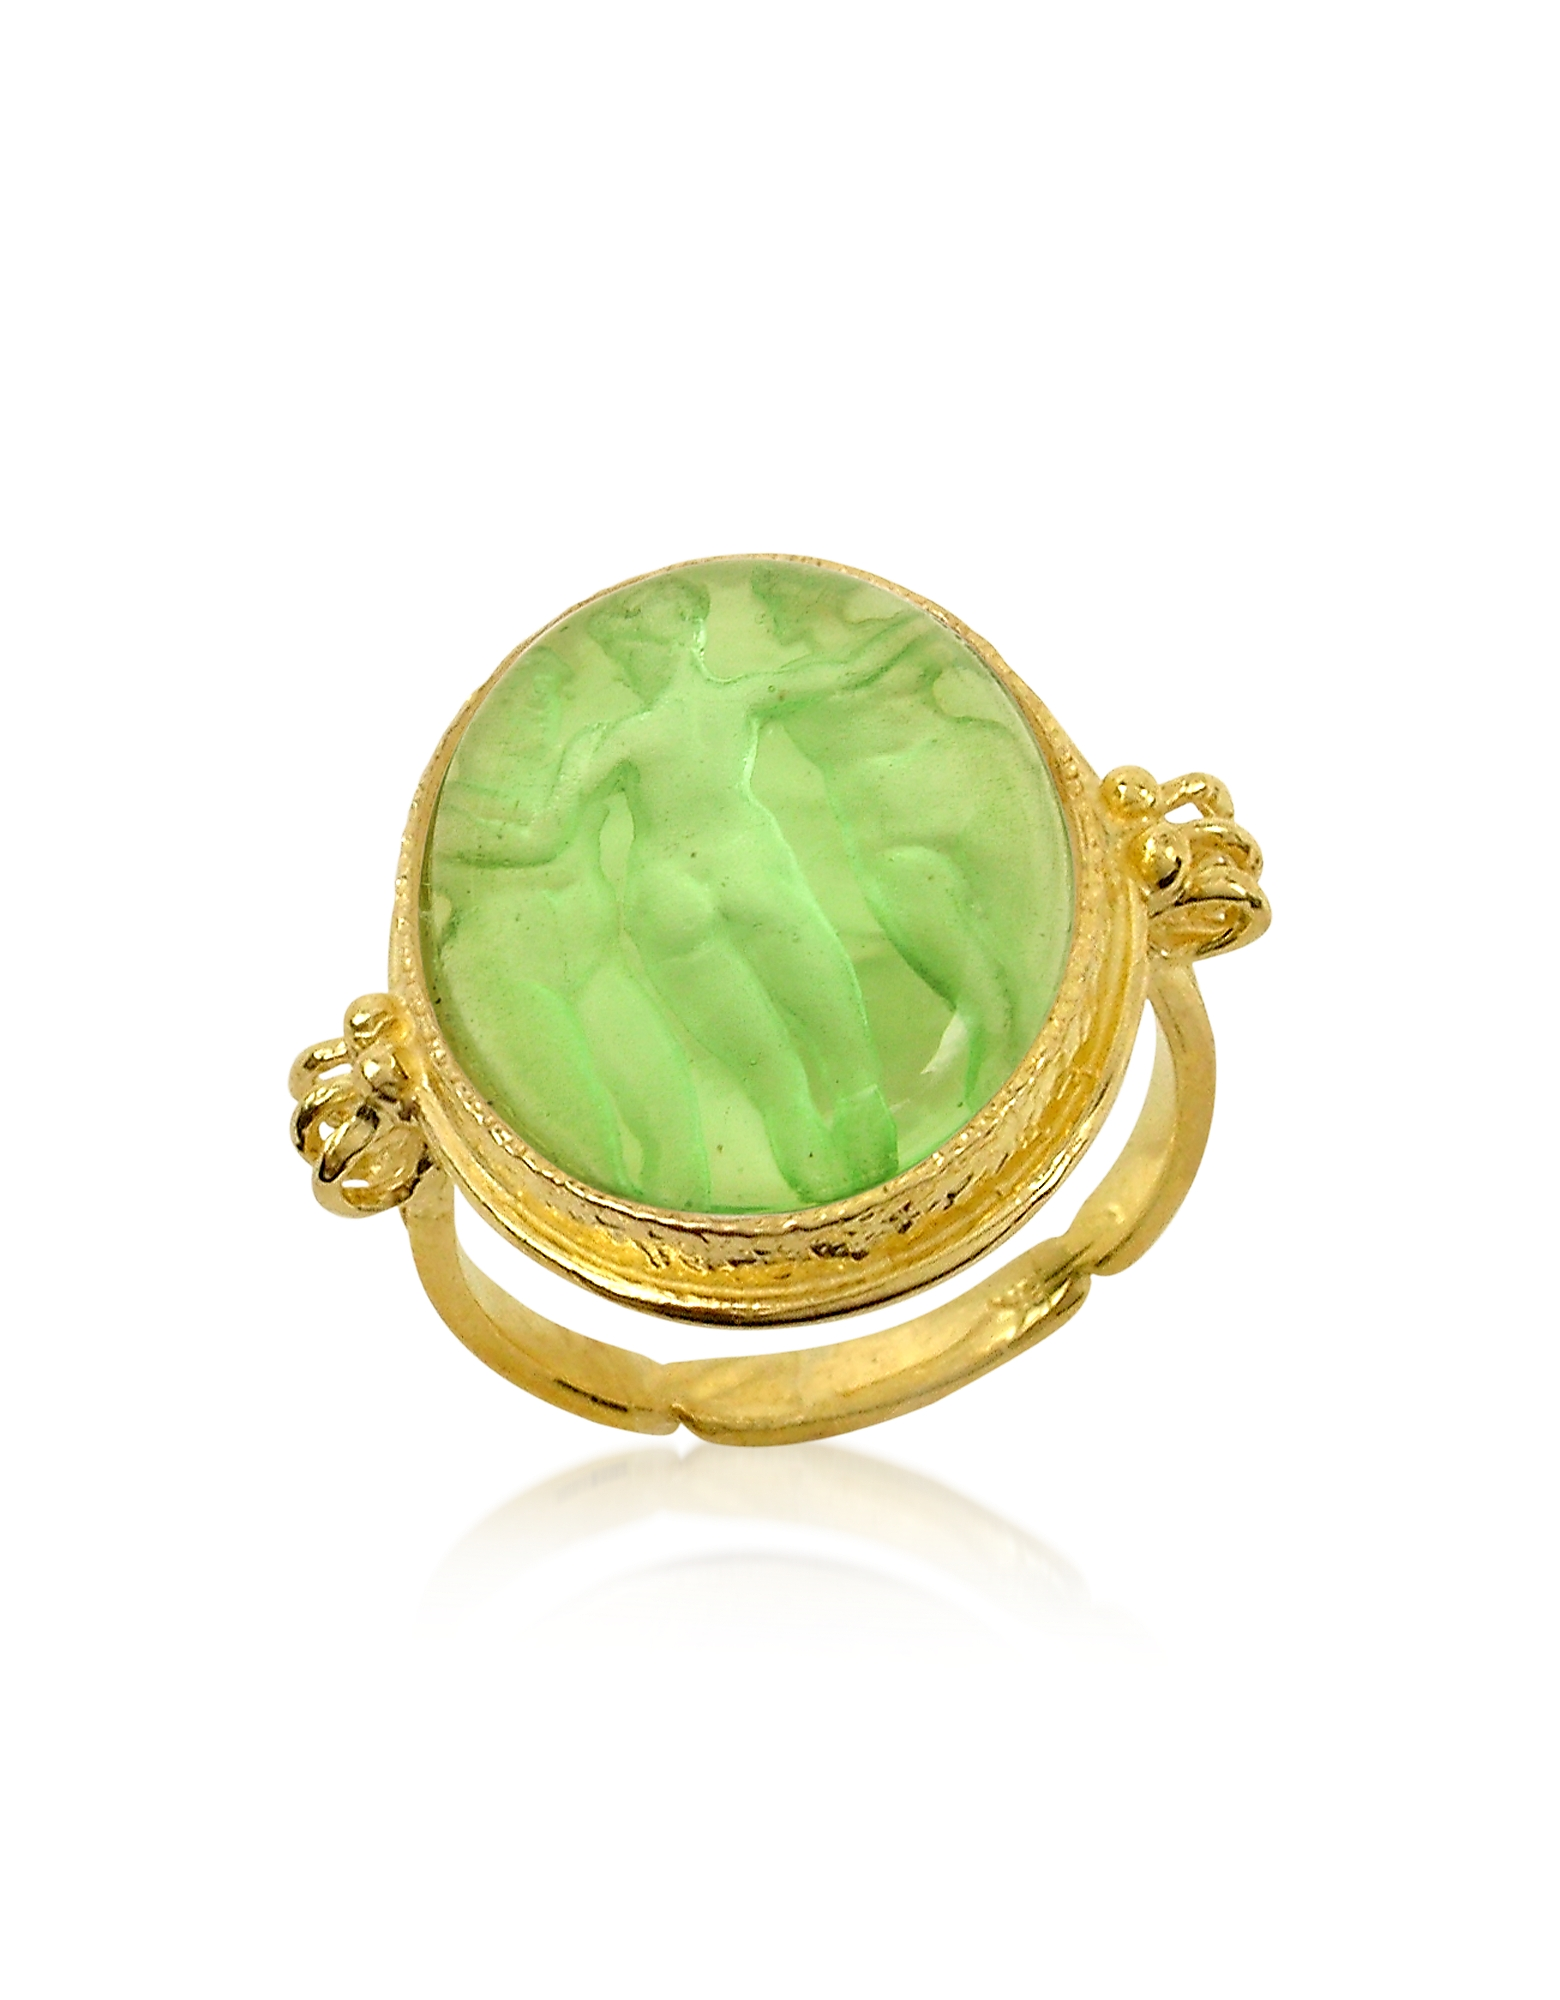 Tagliamonte Cameo, Three Graces - 18K Gold Green Mother of Pearl Cameo Ring